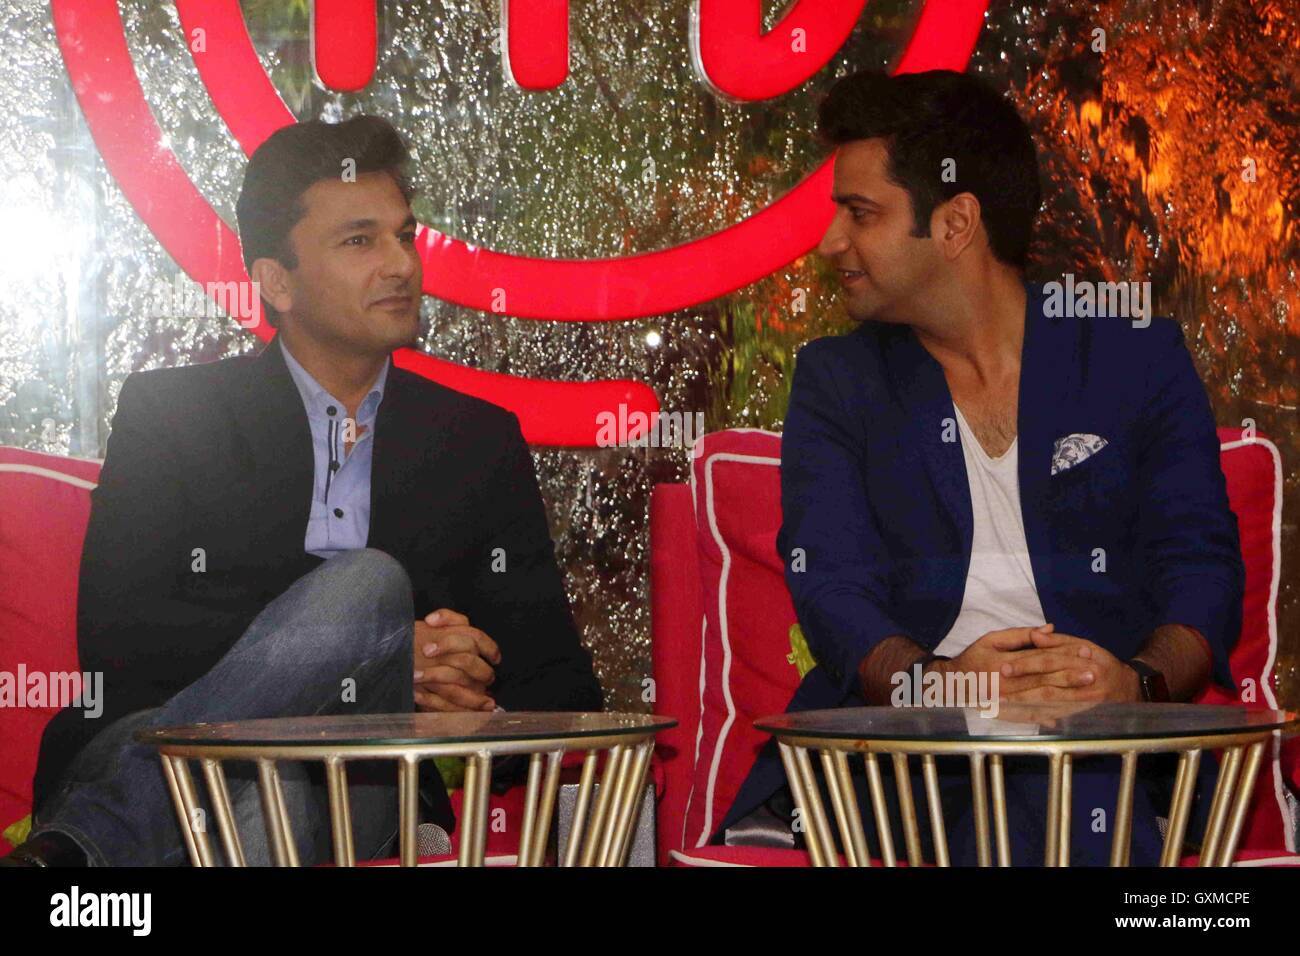 L to R) Chef Vikas Khanna and Kunal Kapur launch of Star